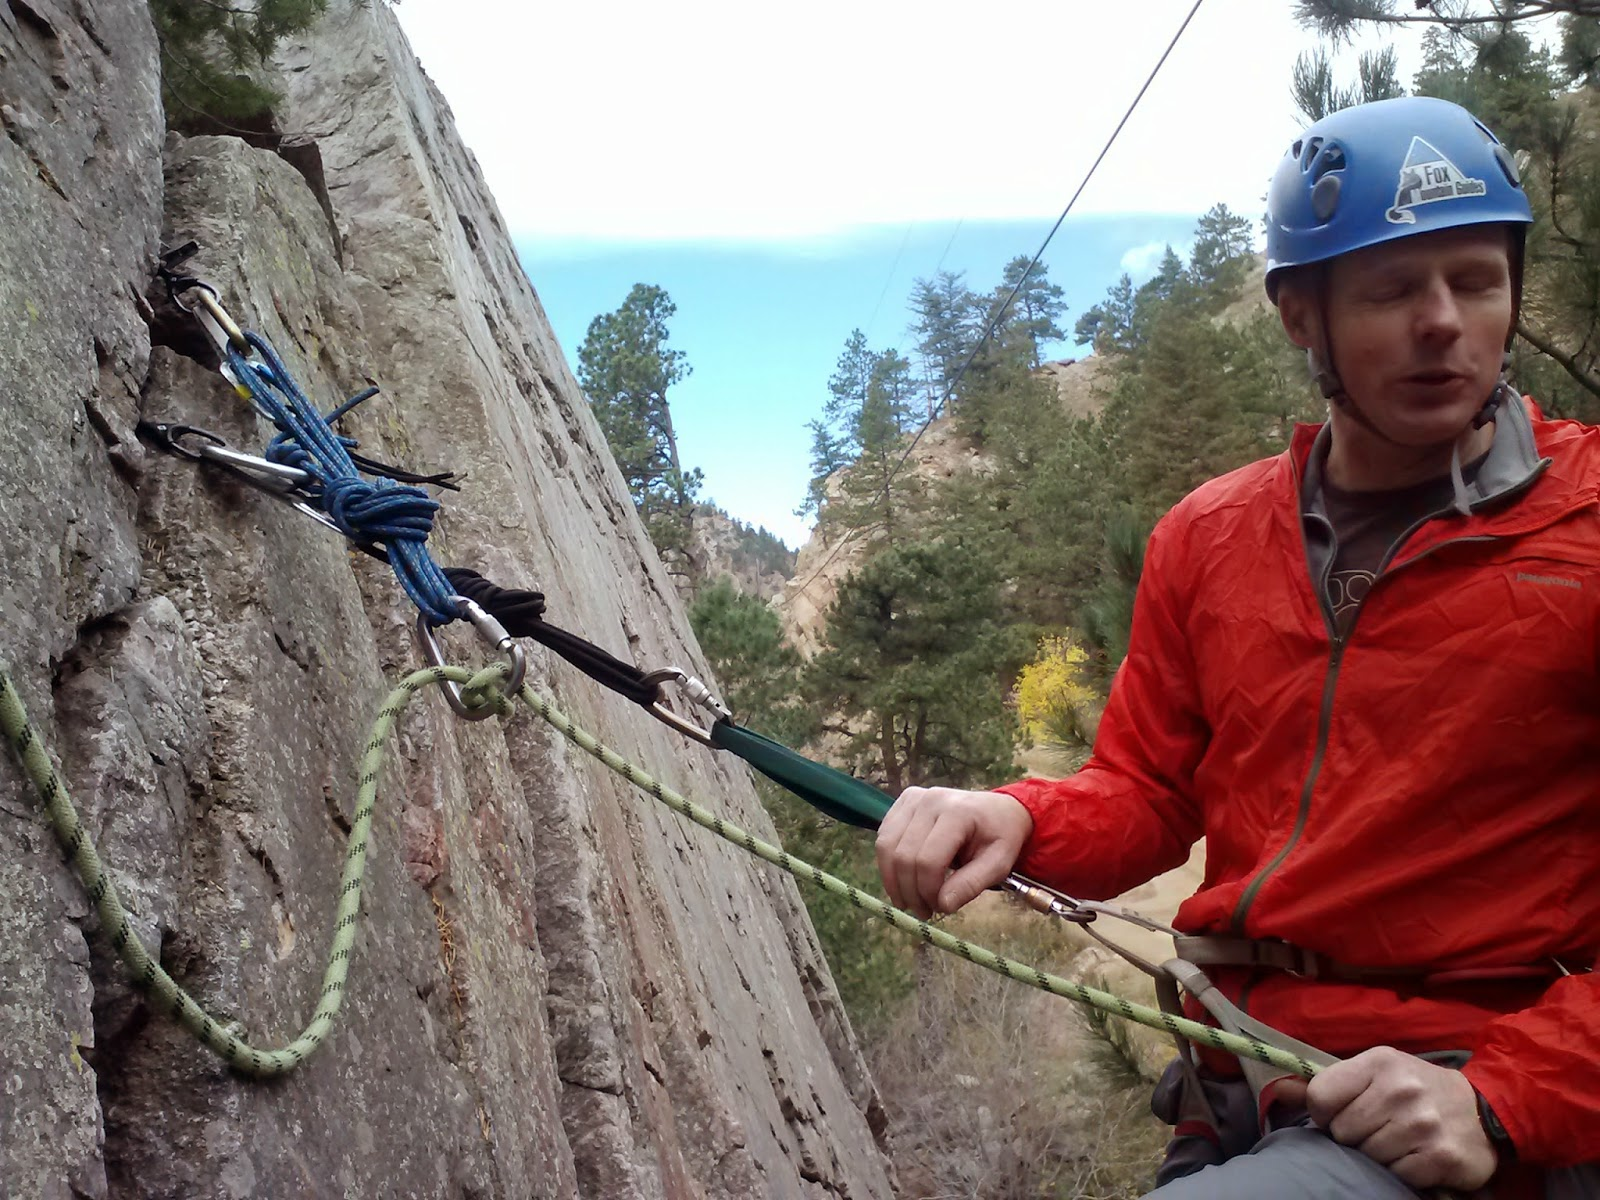 American Alpine Institute - Climbing Blog: Fixed-Point Belay Techniques